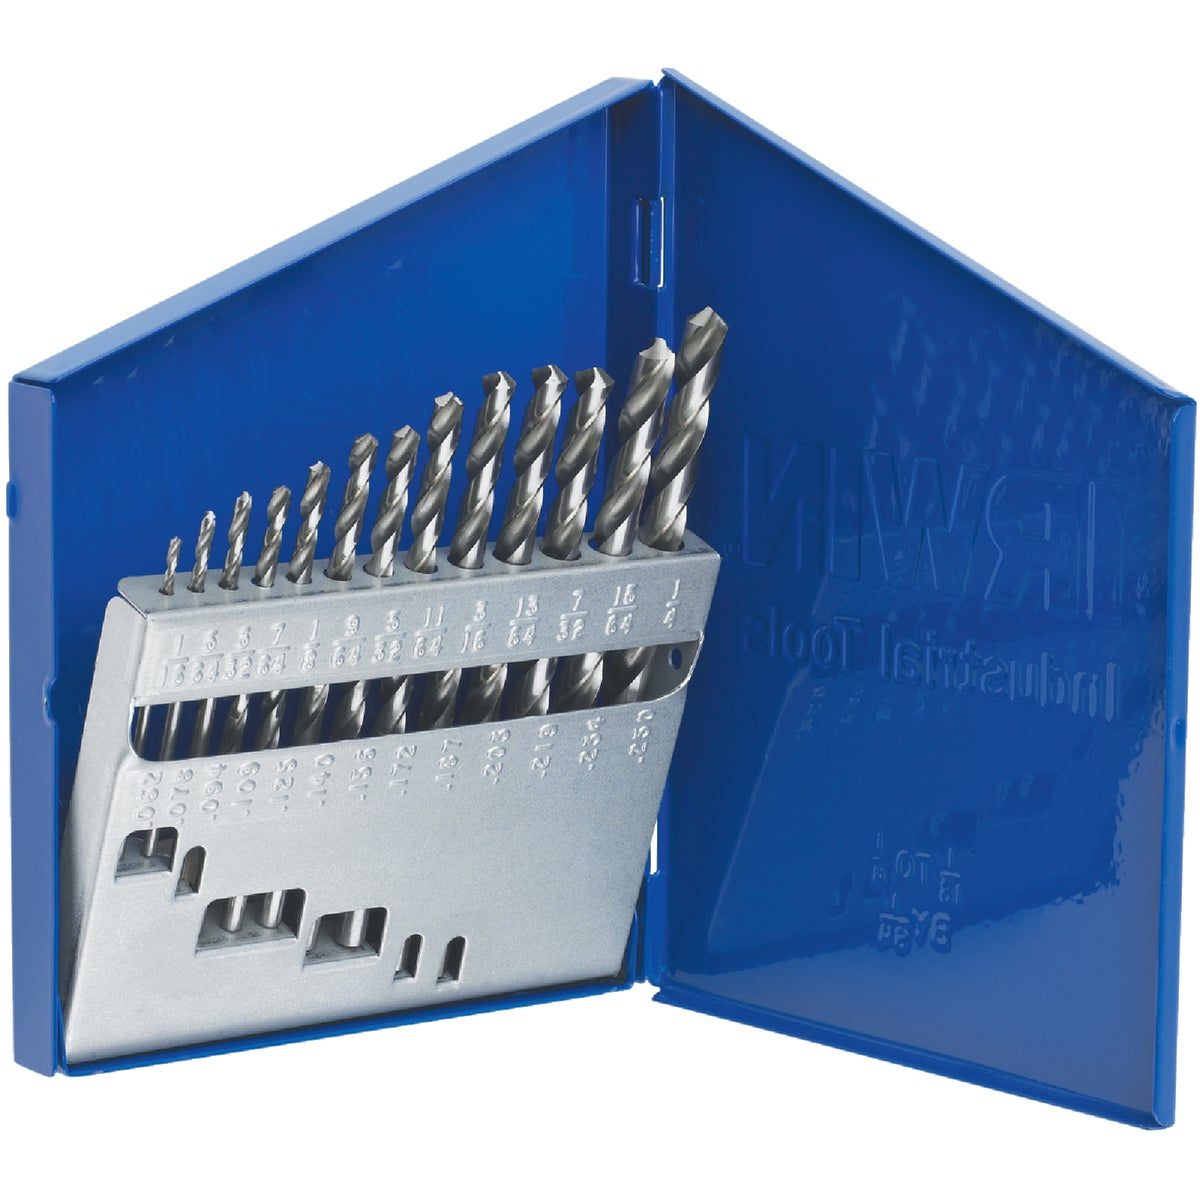 13PC DRILL BIT SET - 60136 by Irwin Industr Tool